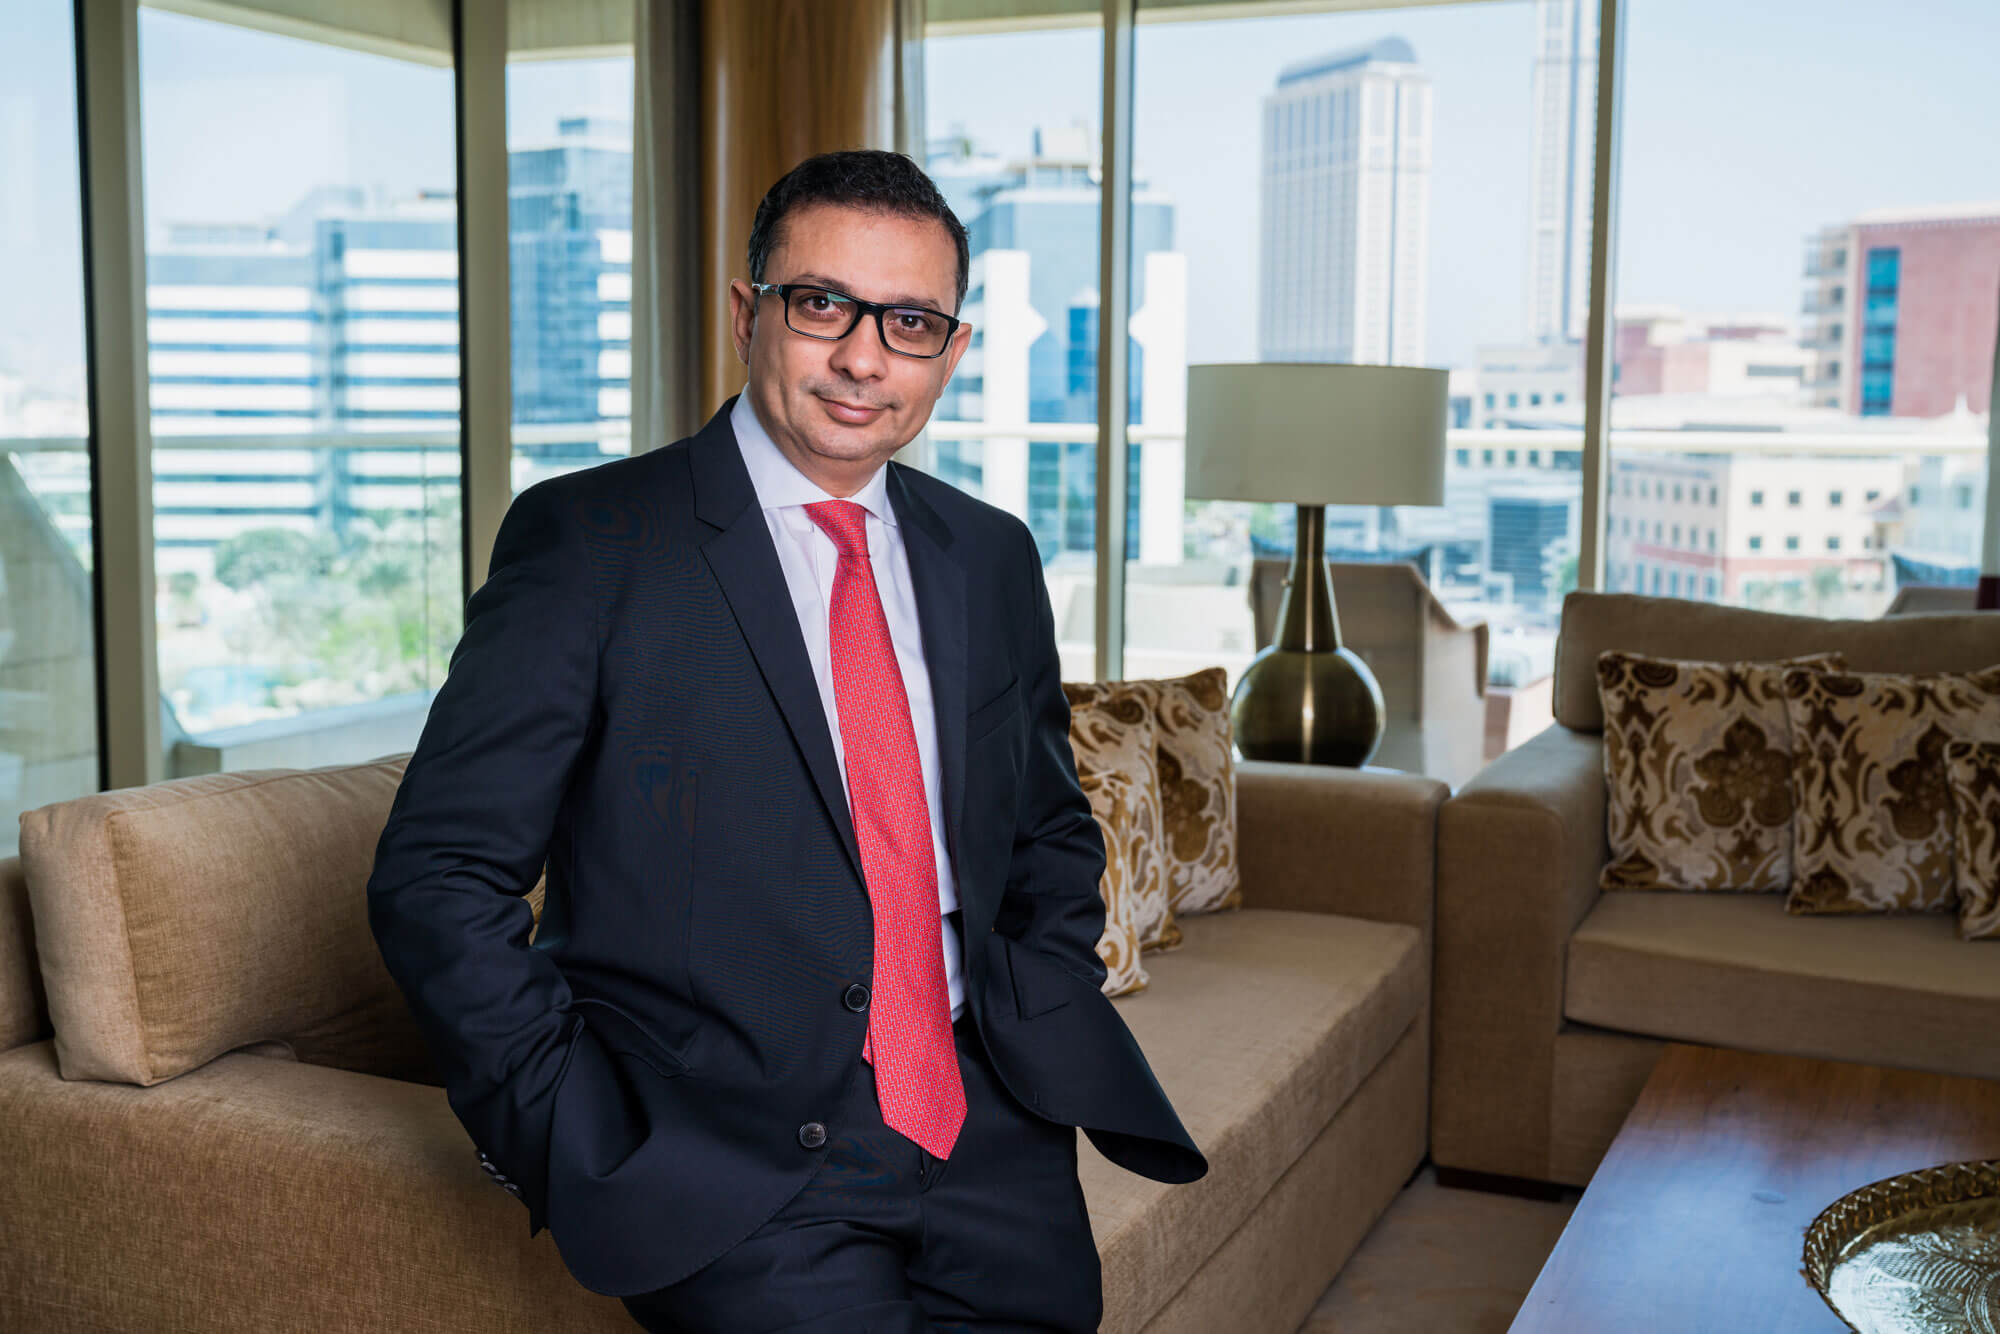 Corporate portrait photography in Dubai